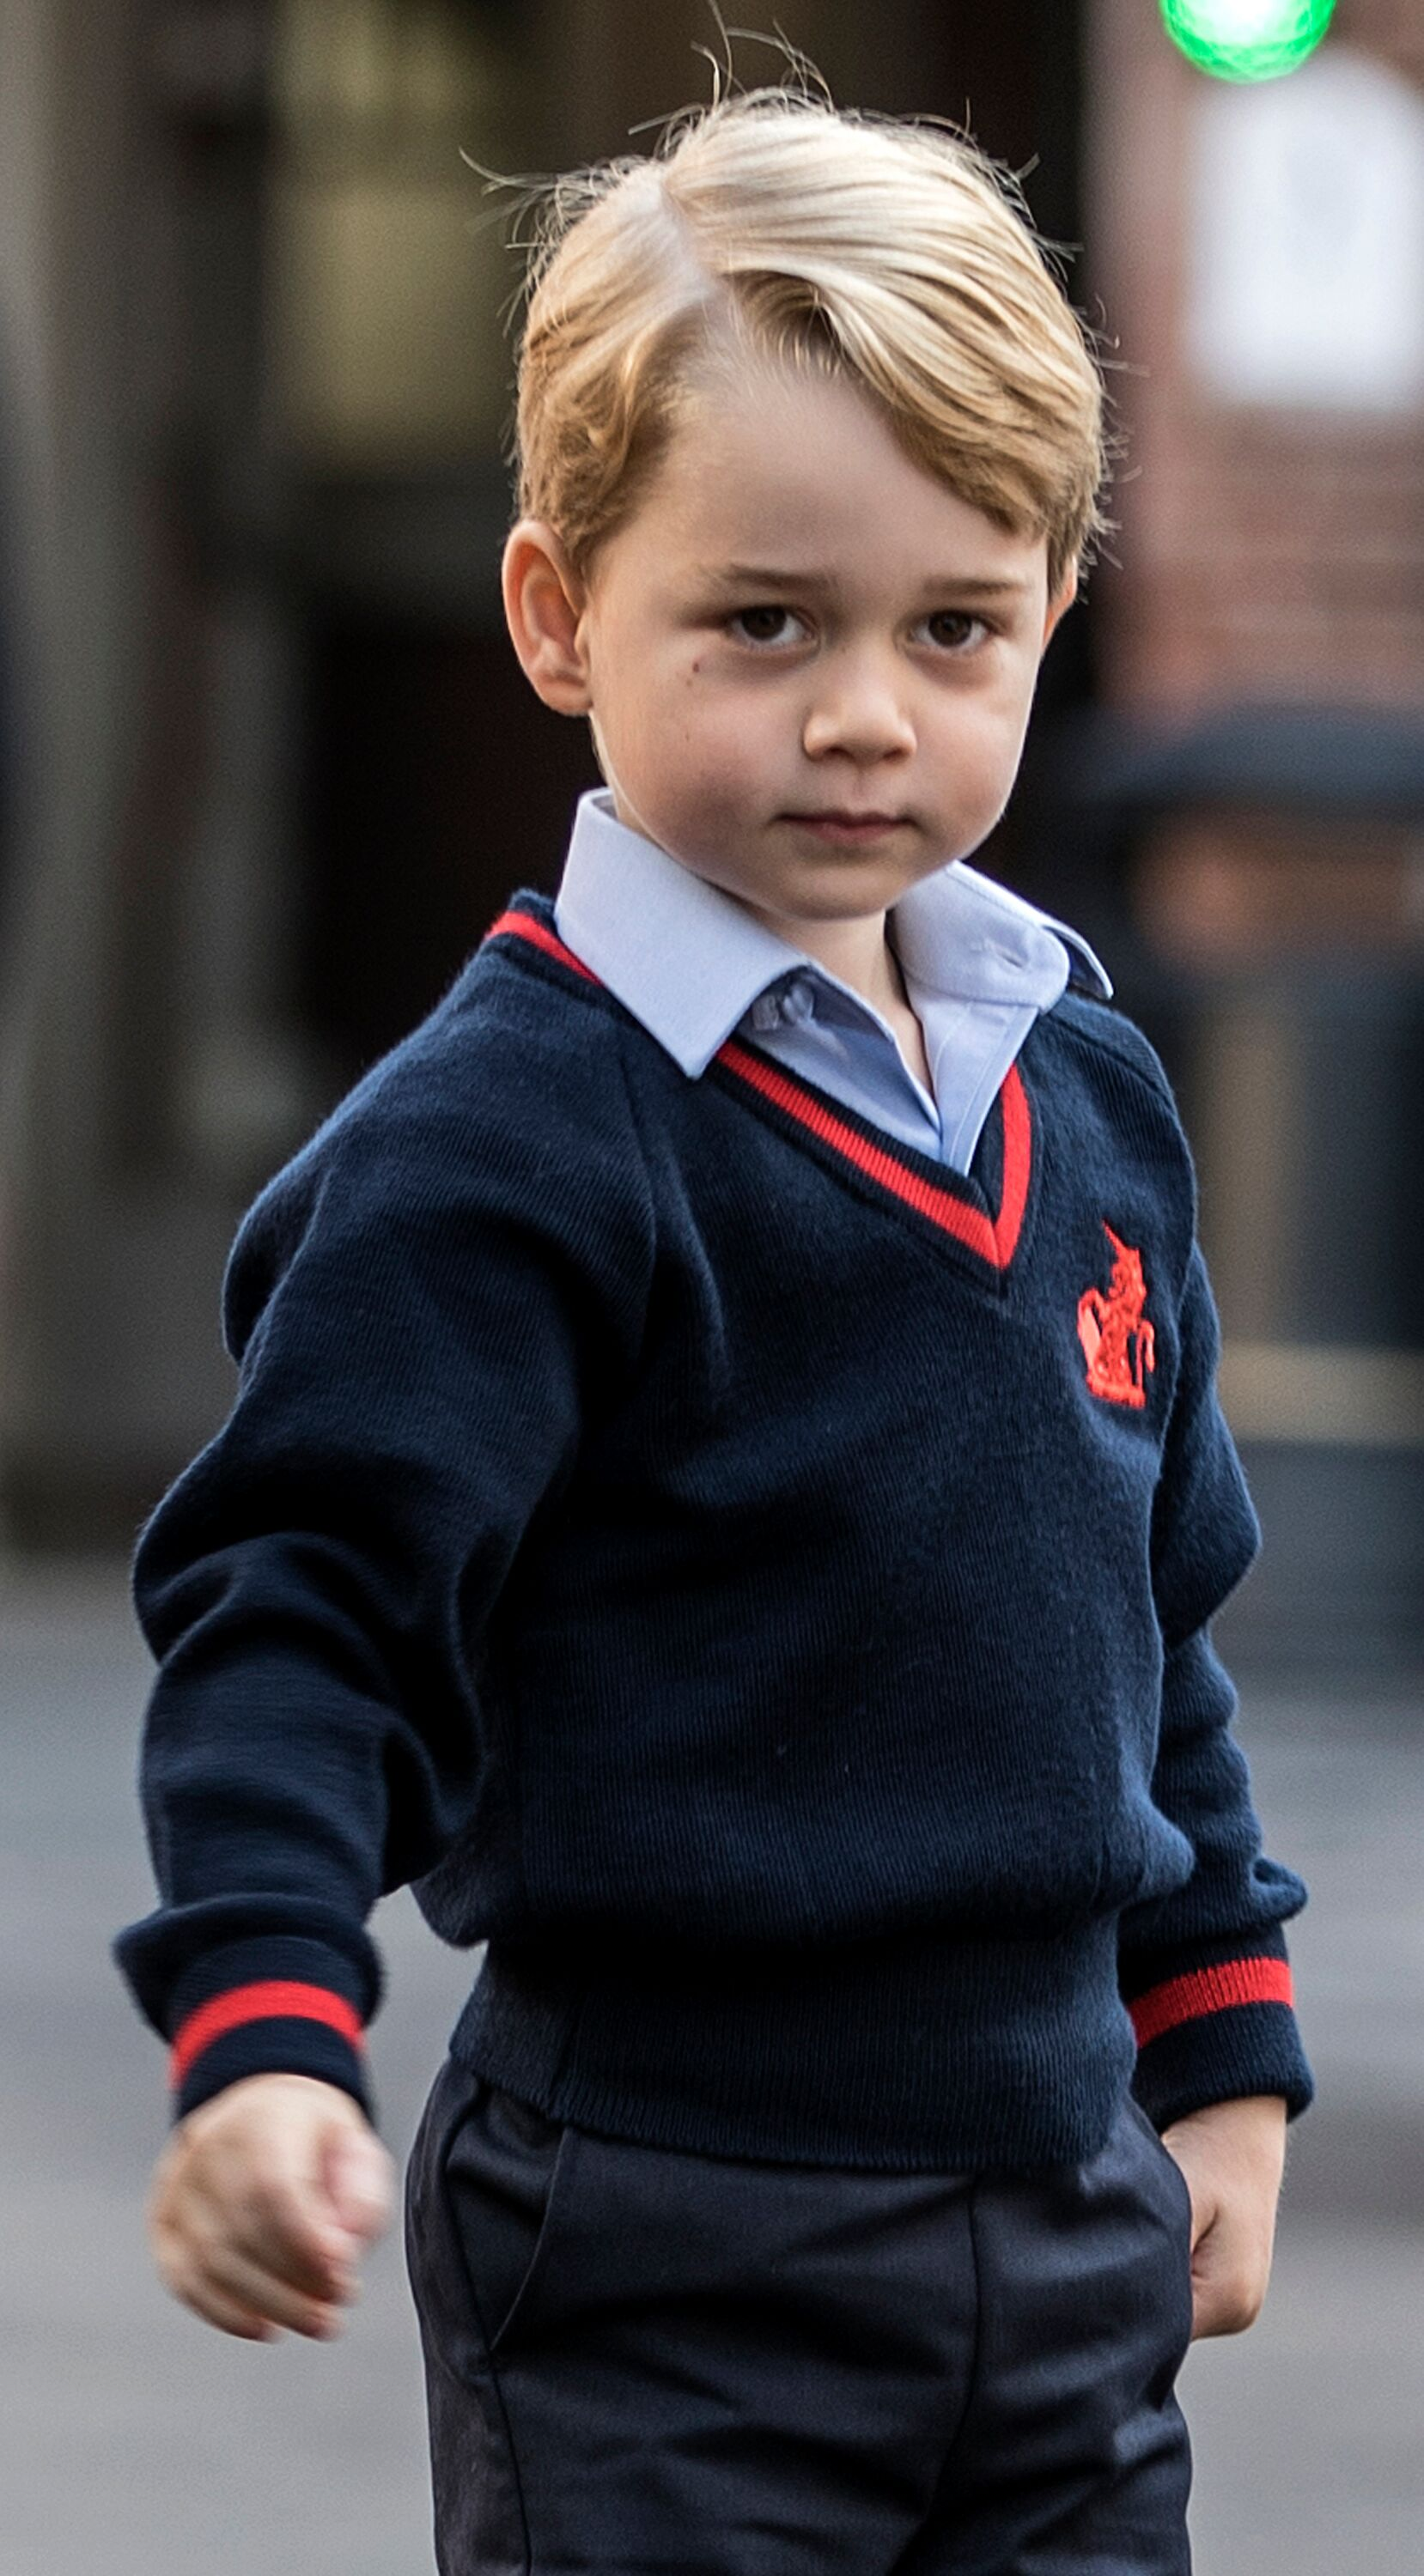 Prince George arrives for his first day of school. | Source: Getty Images